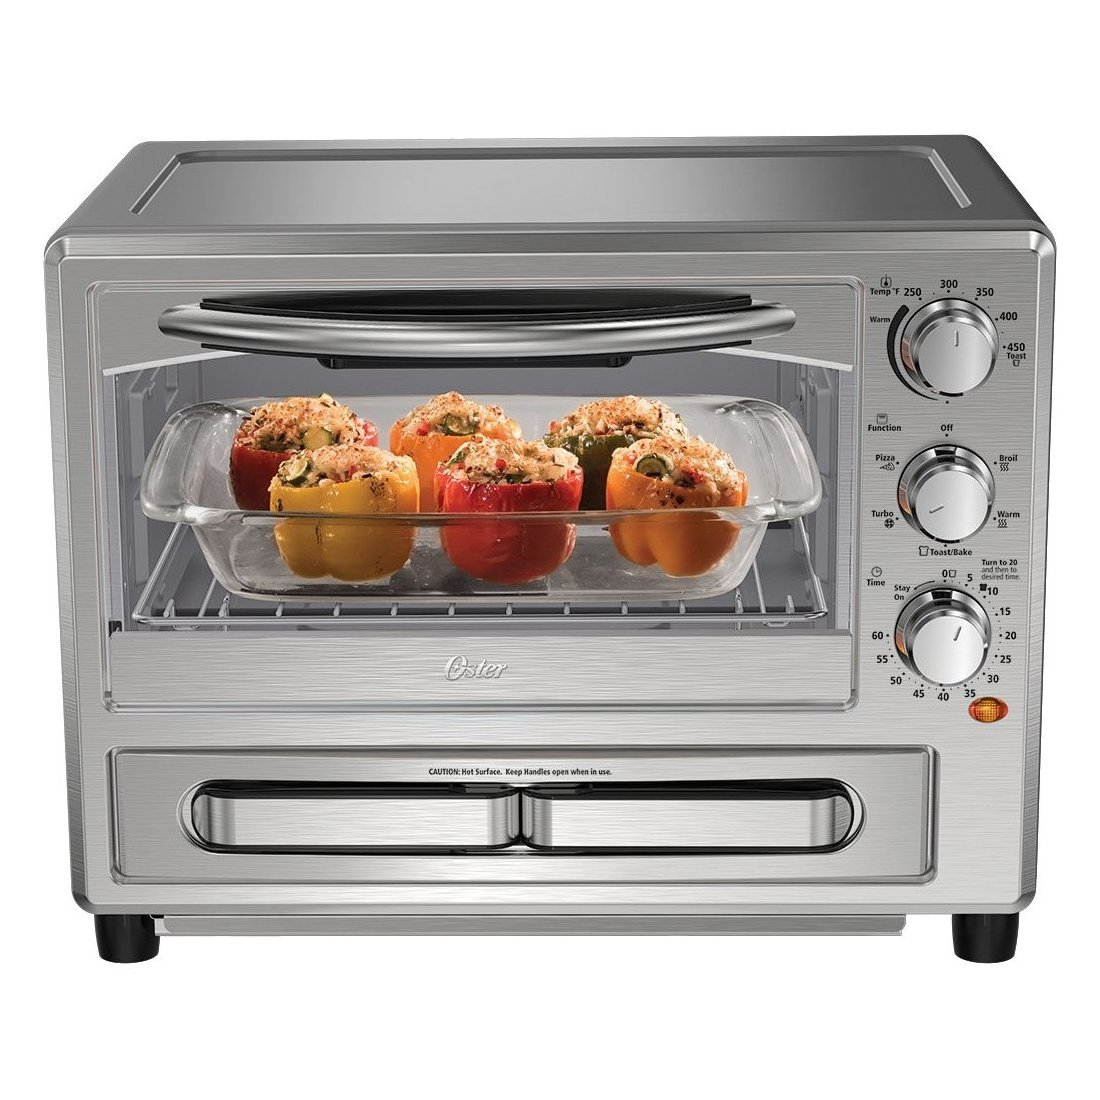 Oster Convection Oven with Pizza Drawer - Silver